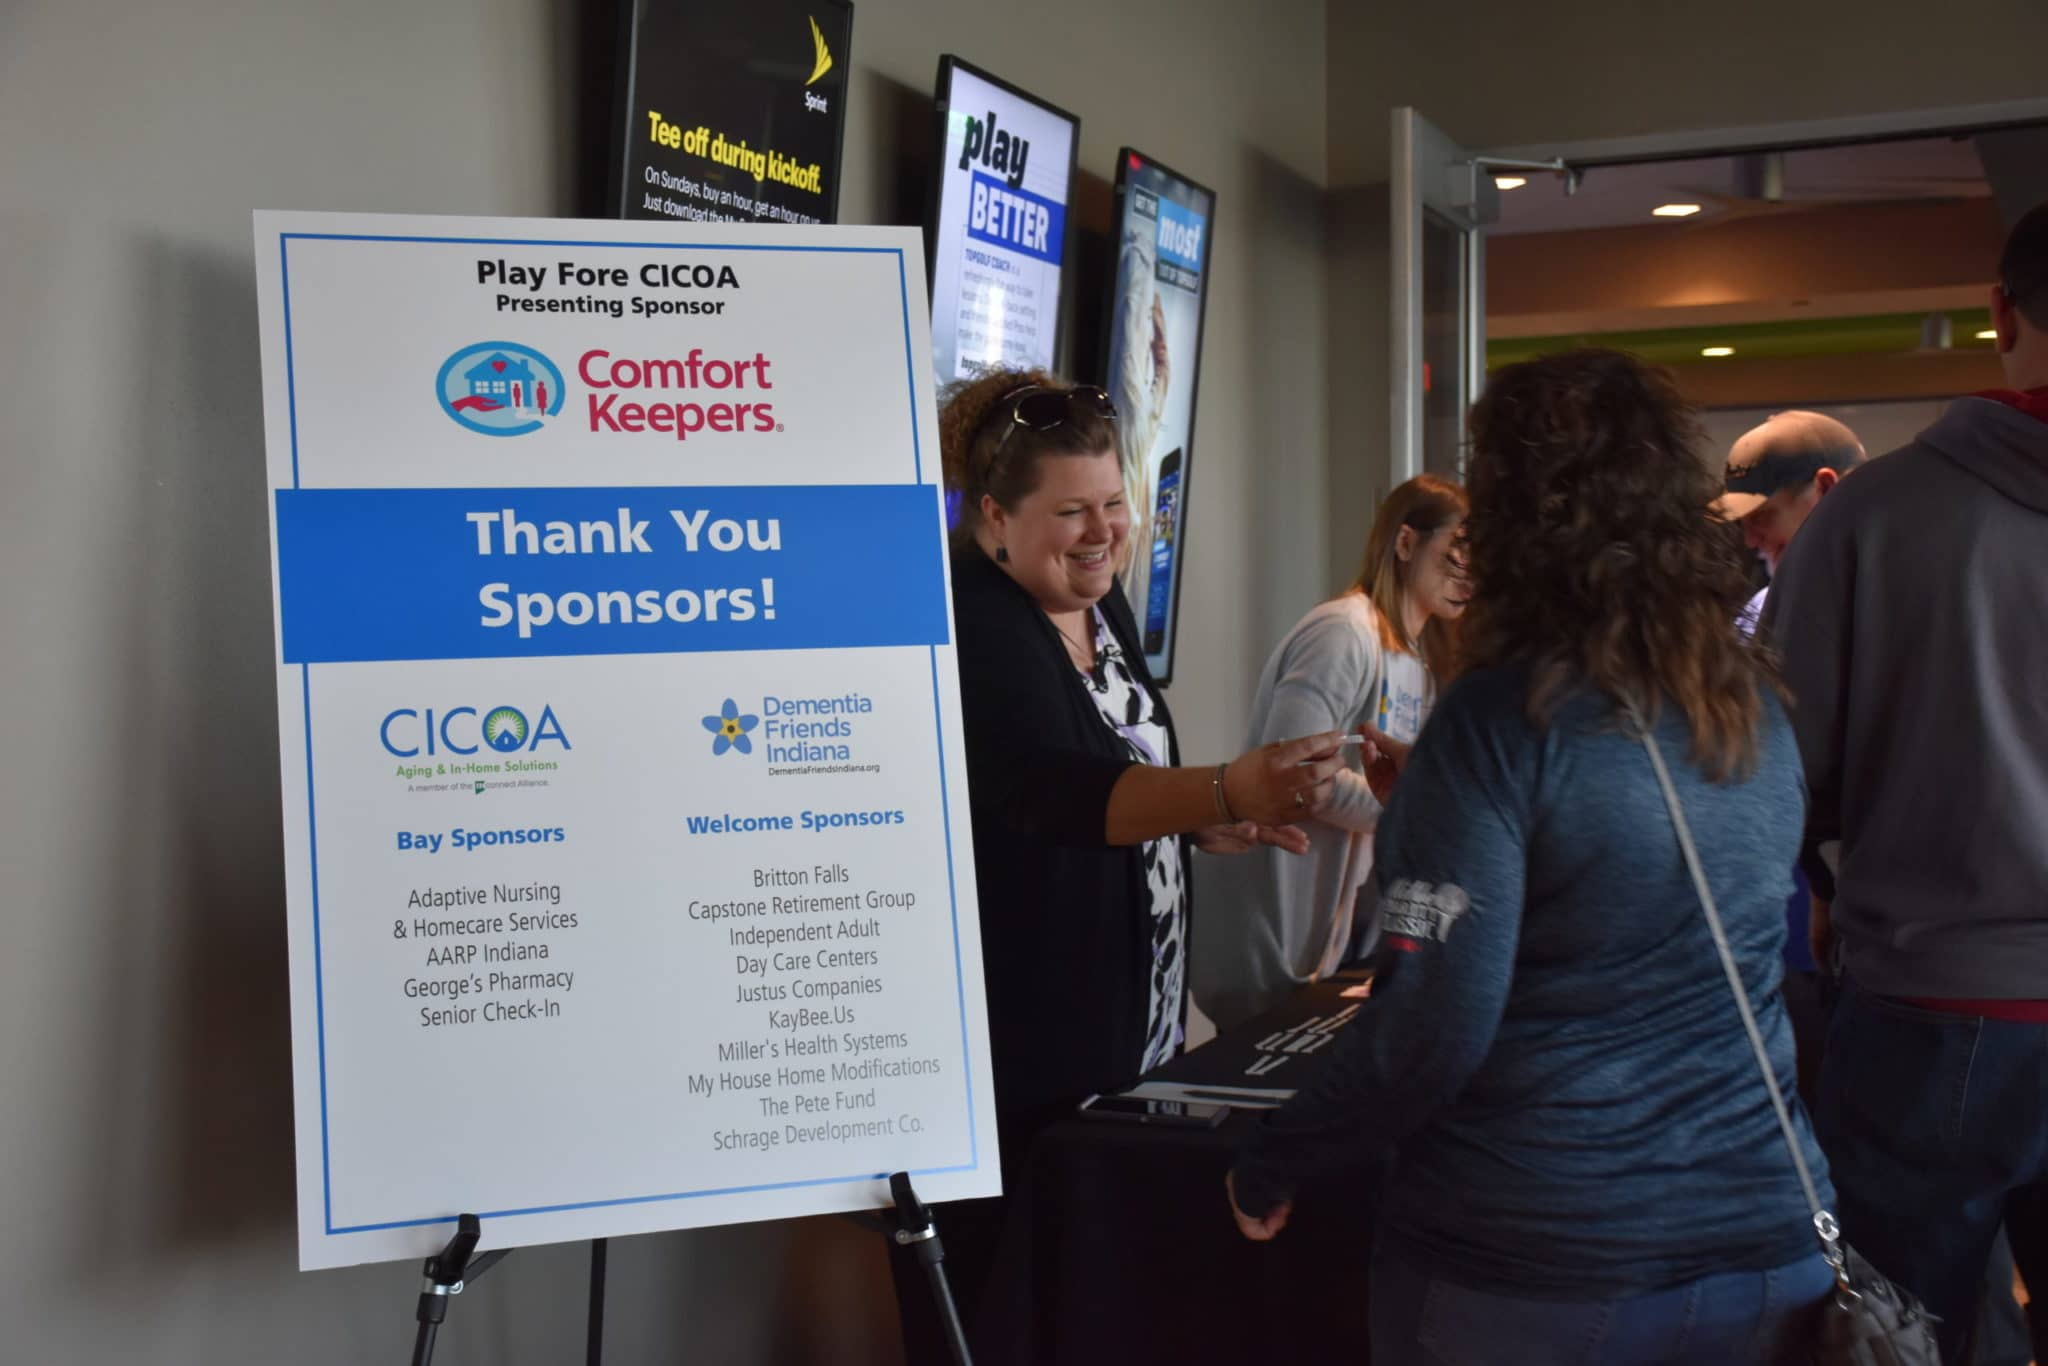 Sponsorship Recognition at Event